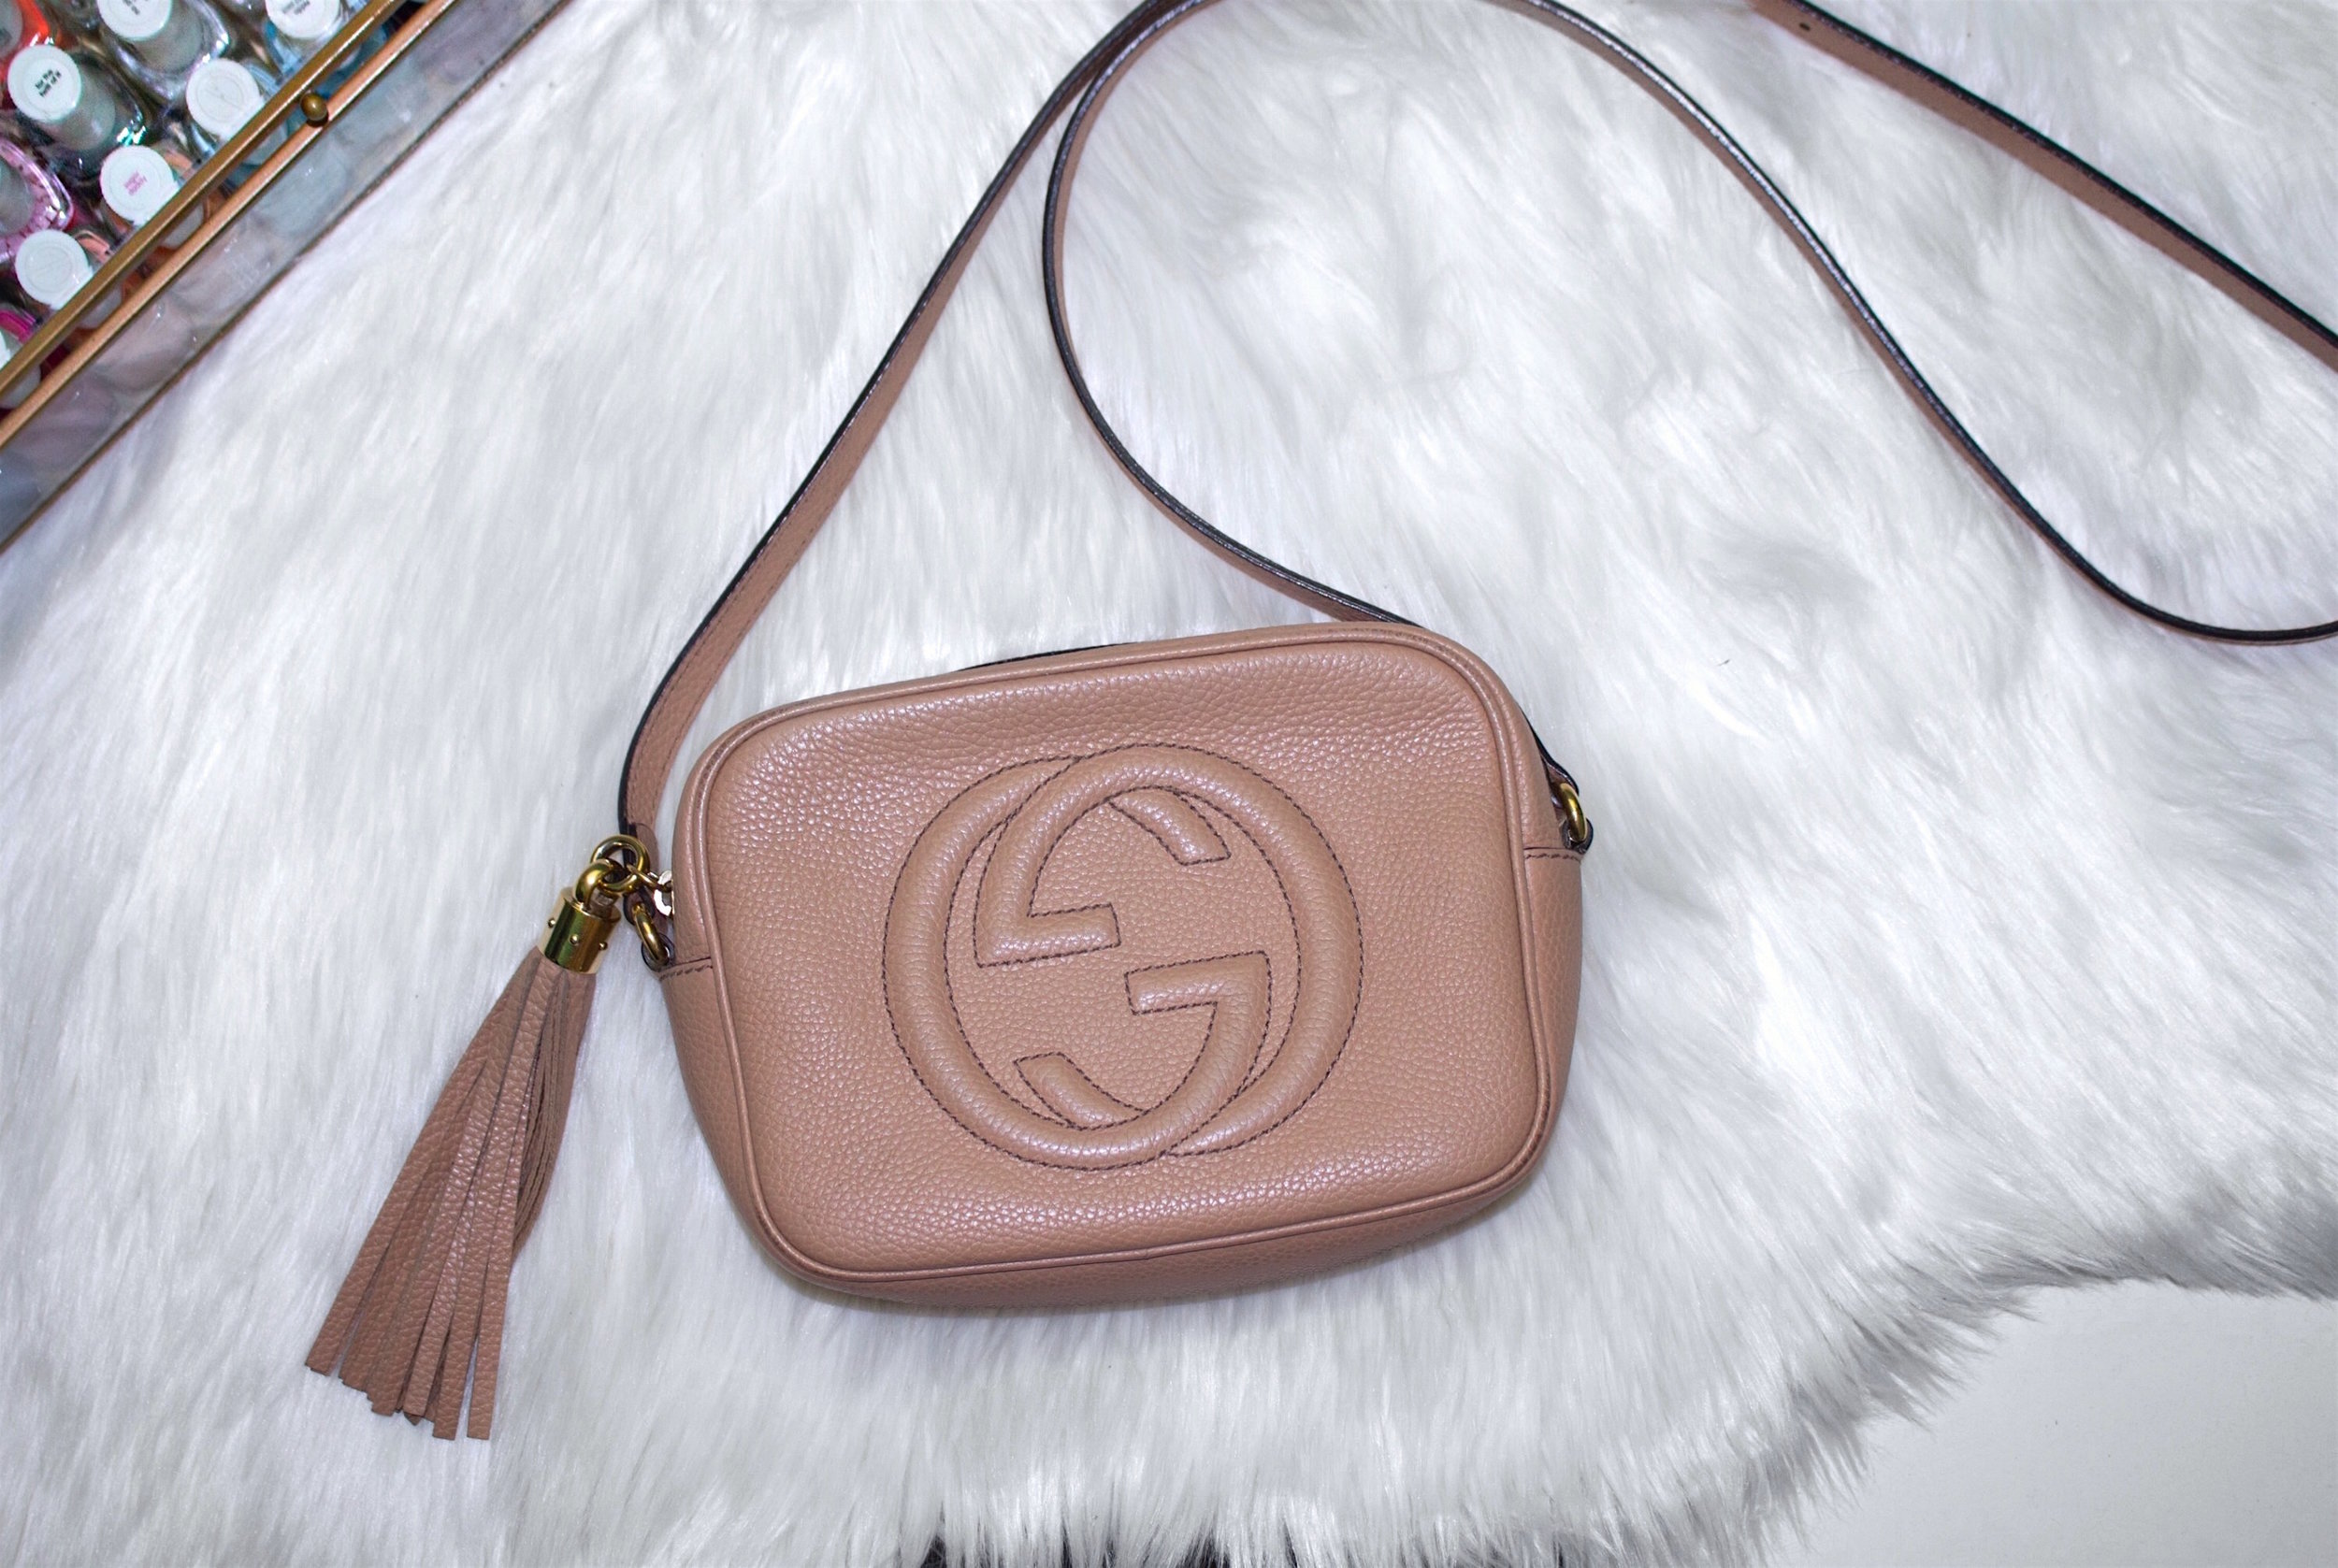 Gucci Soho Disco Bag Review Jasmine Wore What